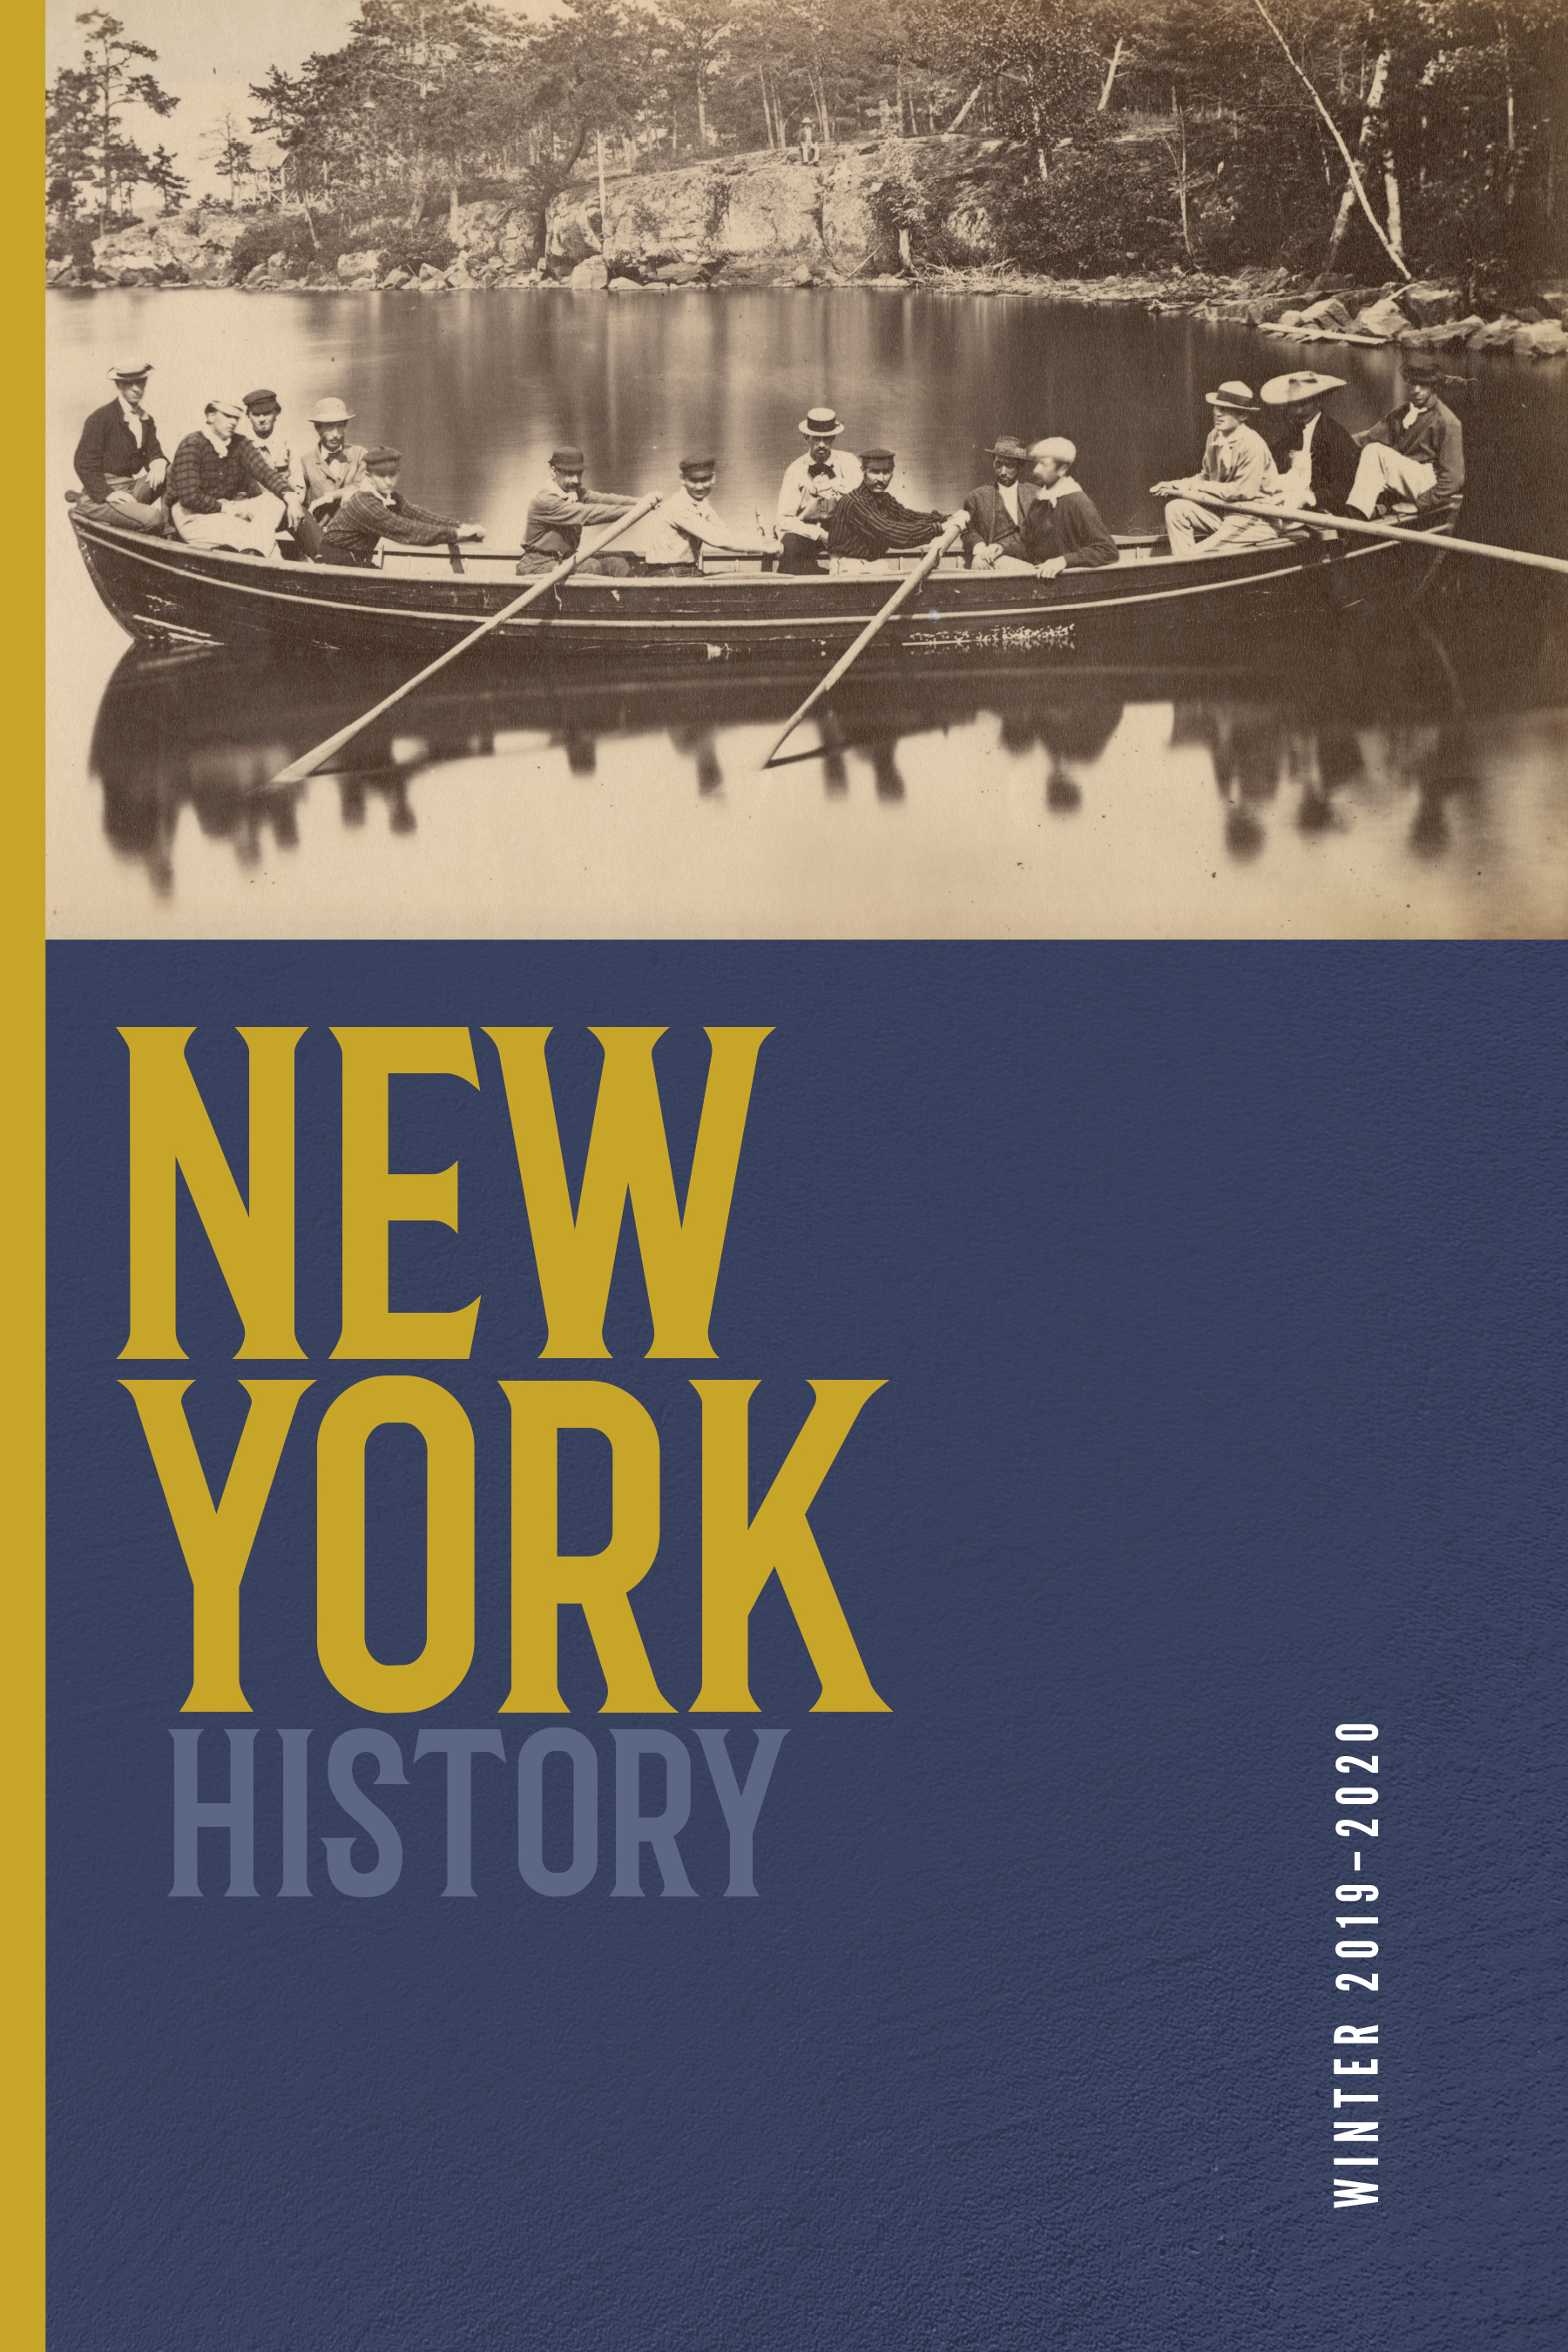 image                                          for New York History